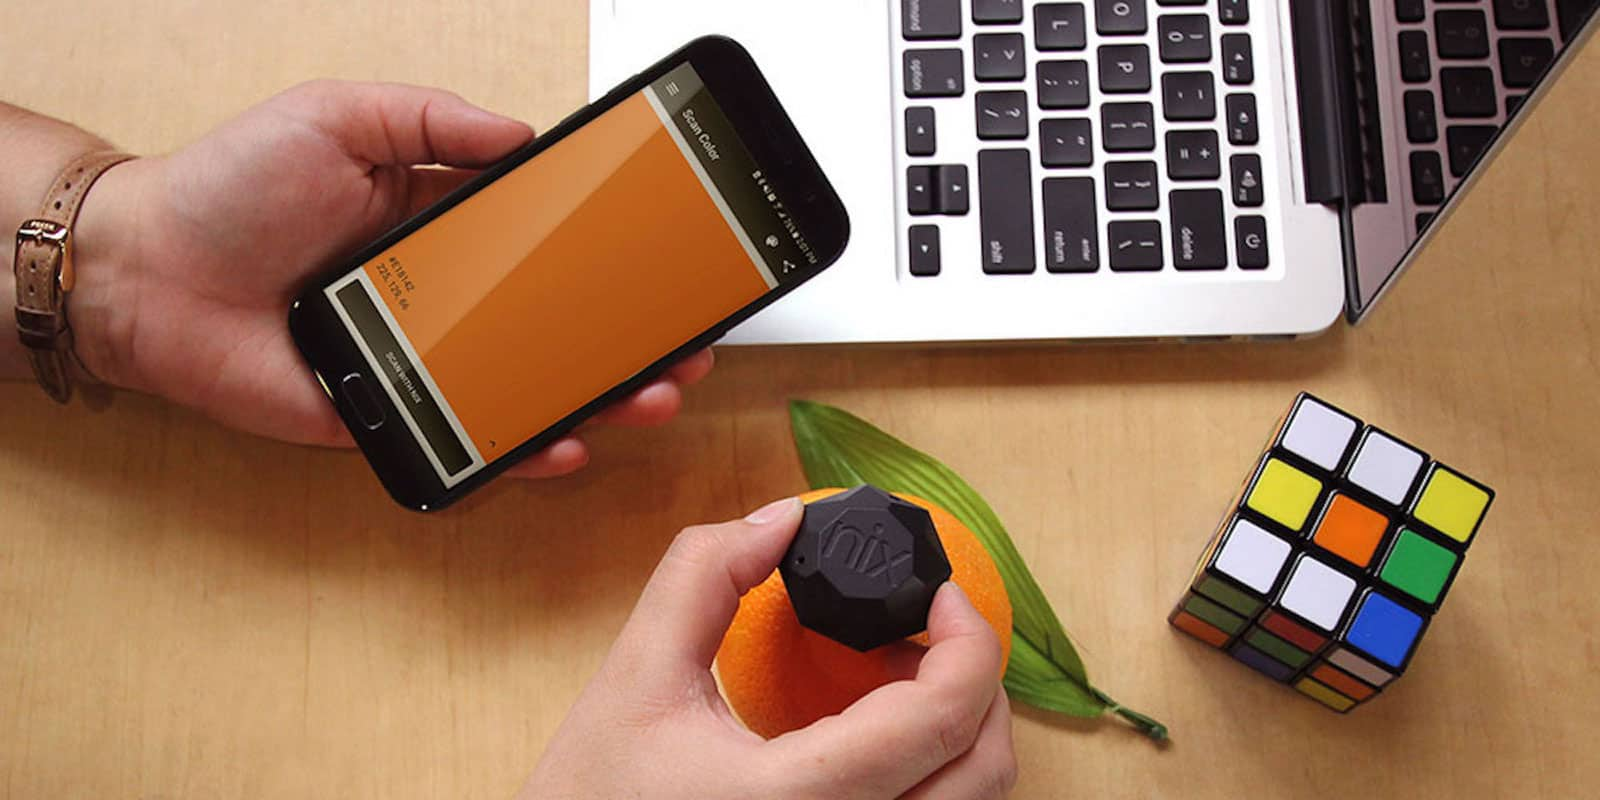 This handheld scanner can provide ultra precise color readings for your digital or paint-based needs.